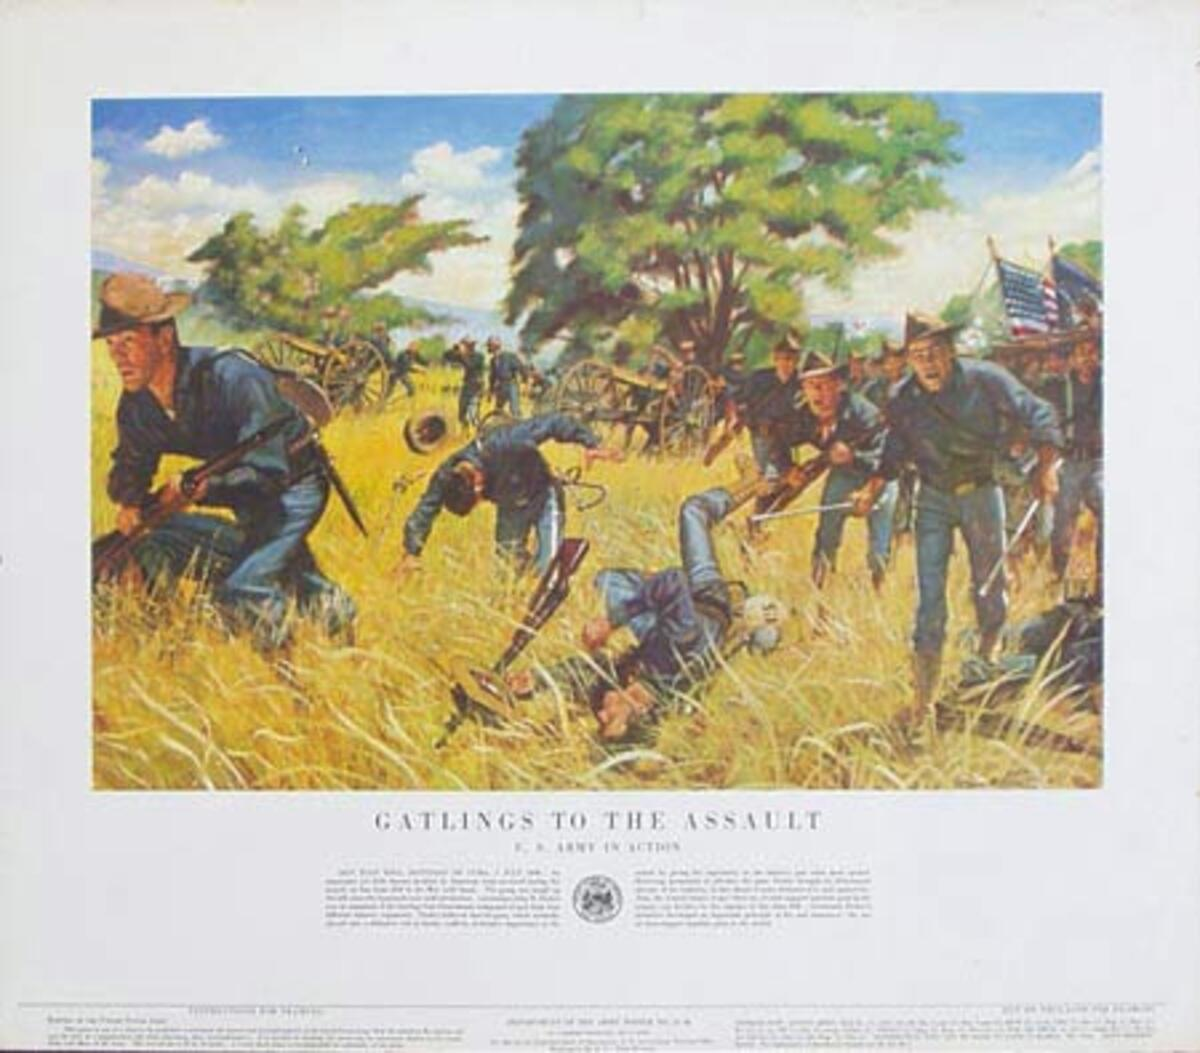 Gatlings to the Assualt U.S. Army in Action Original Vintage Army Propaganda Poster